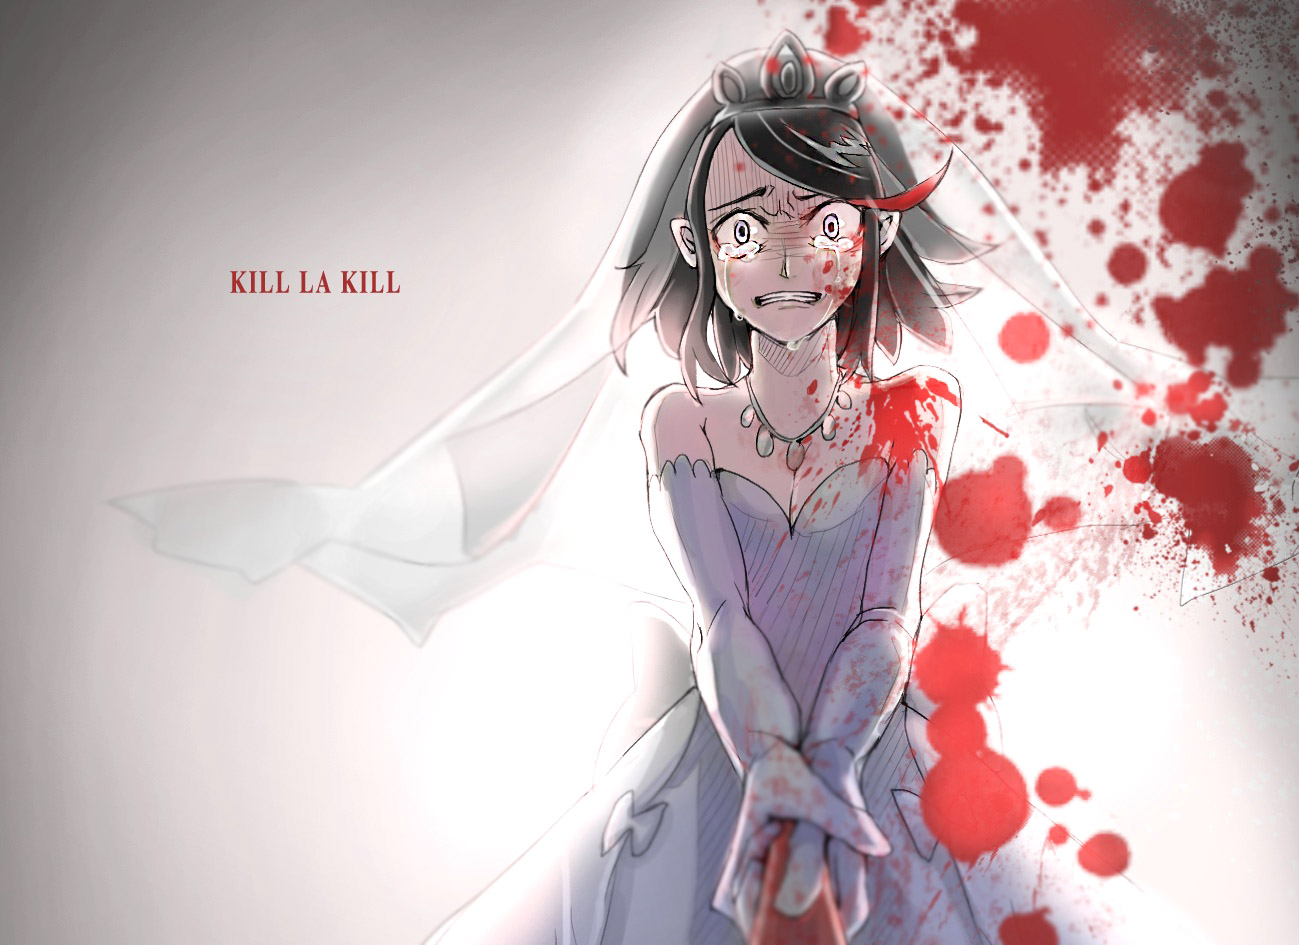 surprising Ryuko Wedding Part - 15: KILL LA KILL Ryuko Matoi Senketsu human hair color anime black hair mangaka  cg artwork girl